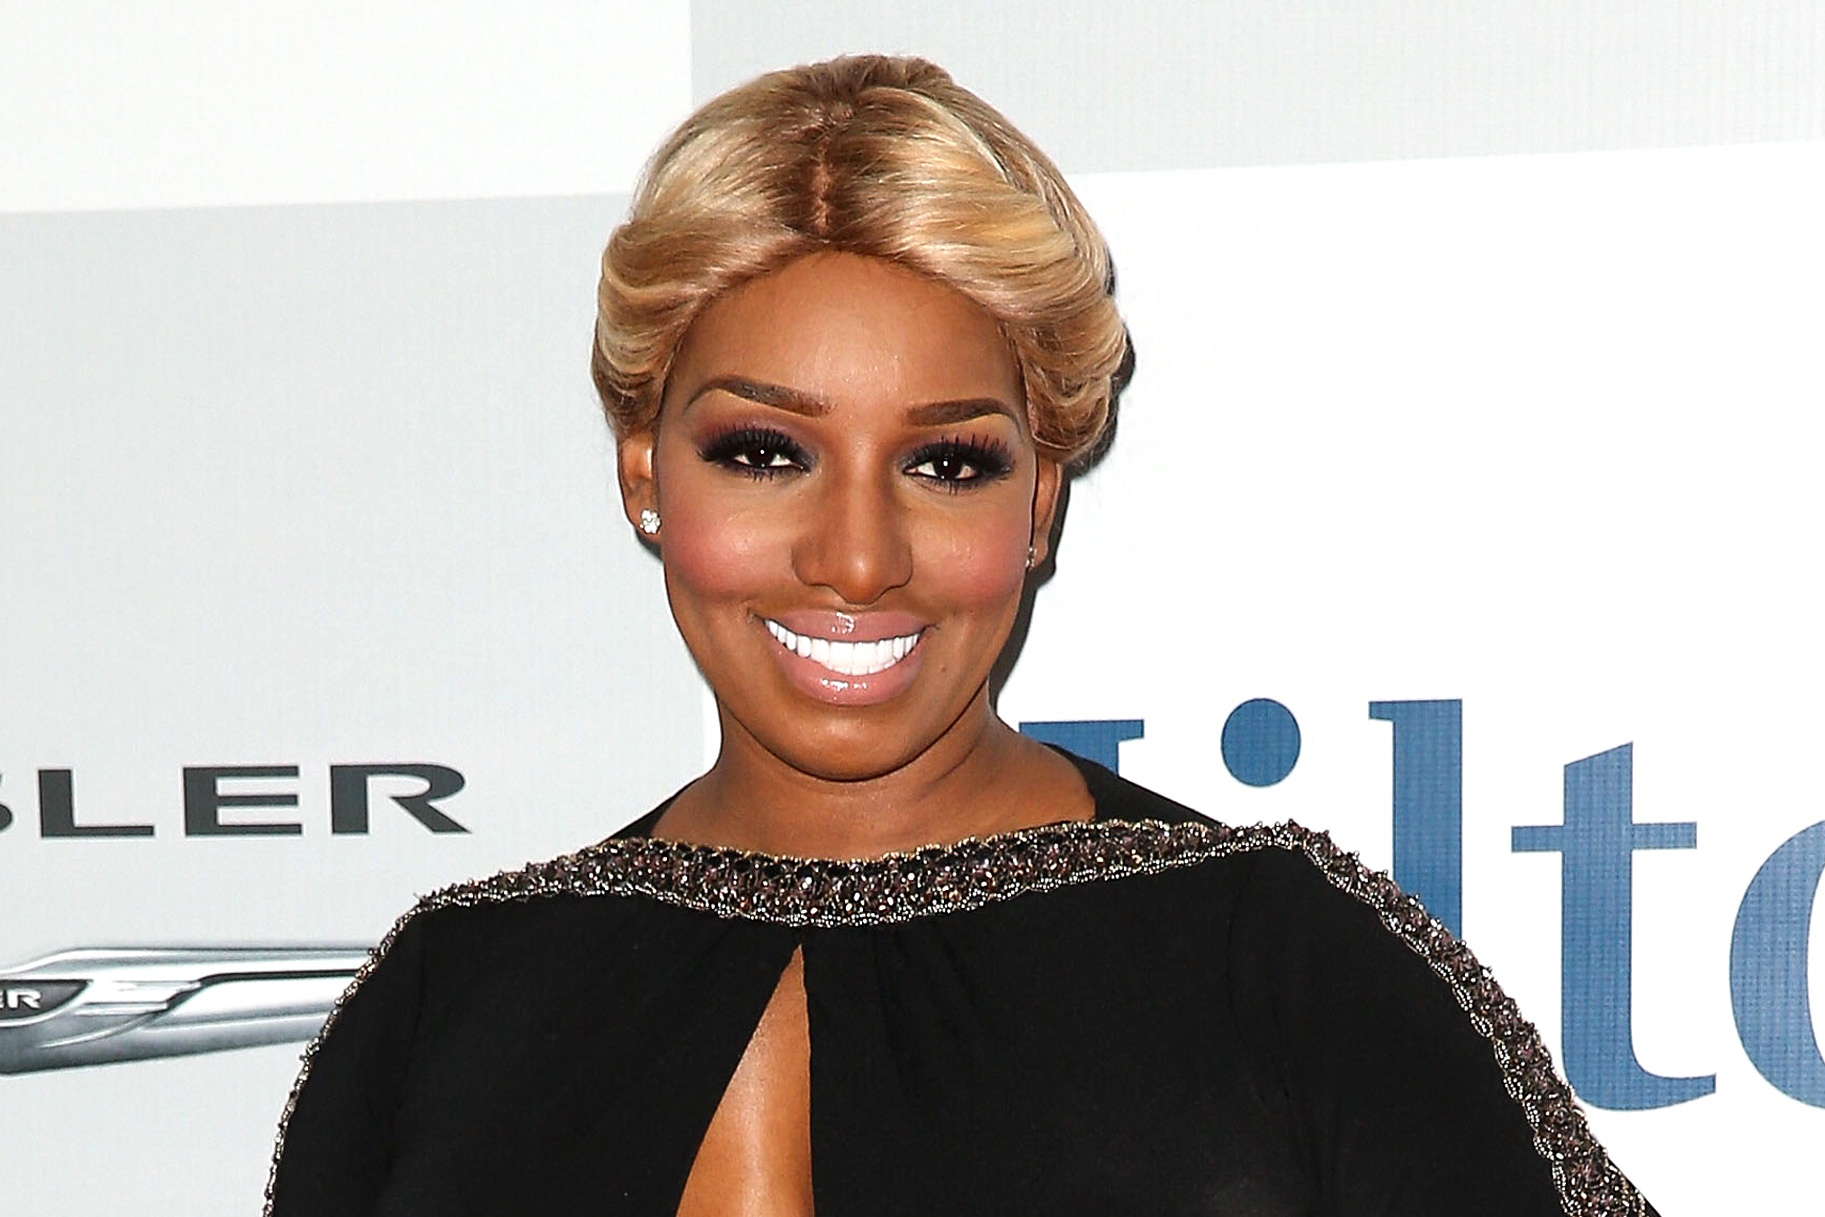 Nene Leakes richest reality TV stars